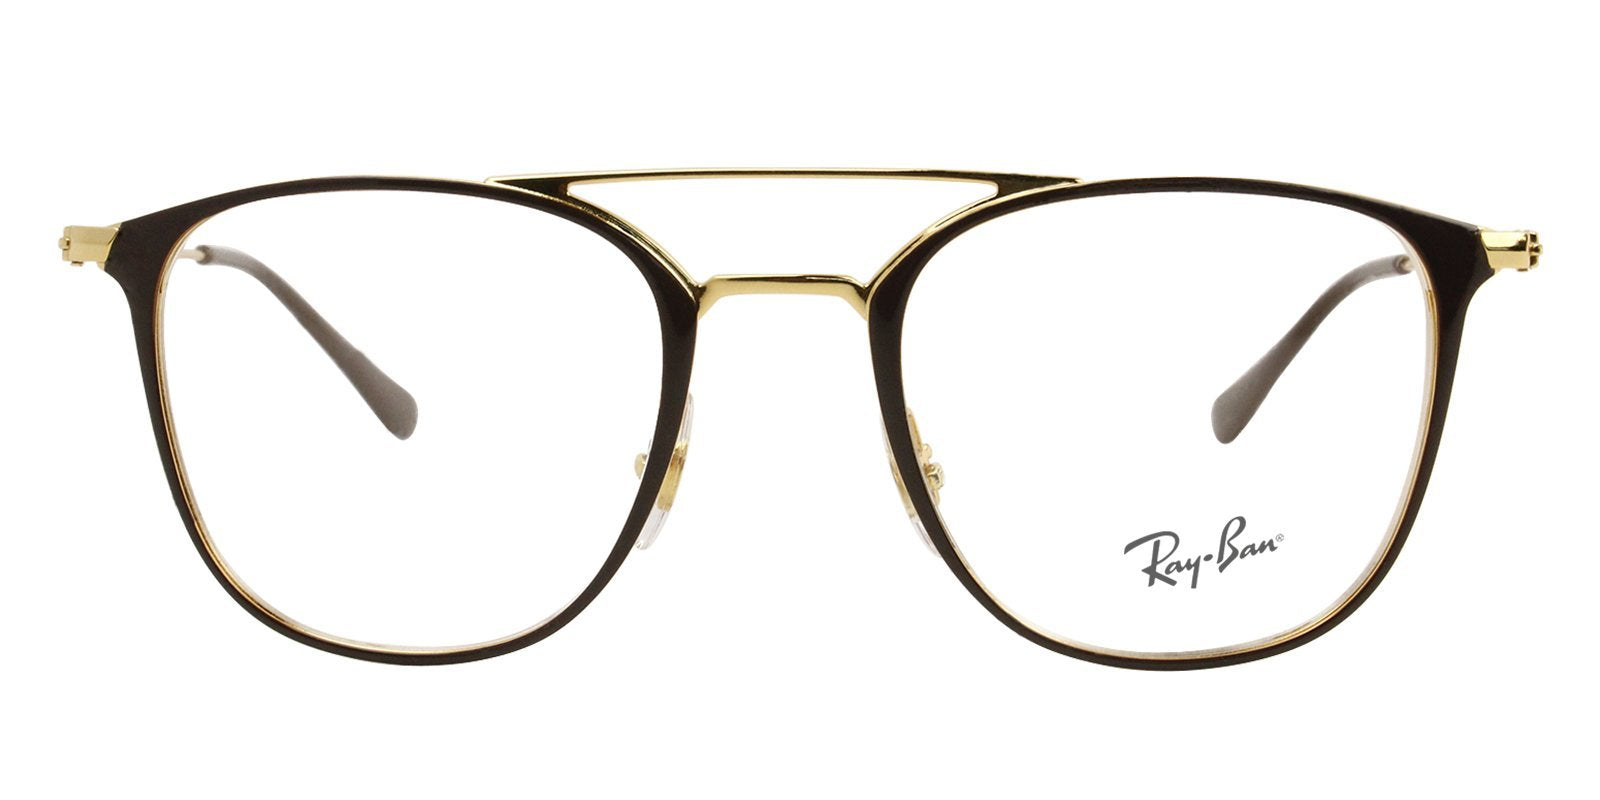 Ray Ban Rx - RX6377 Brown Rectangular Women Eyeglasses - 50mm-Eyeglasses-Designer Eyes